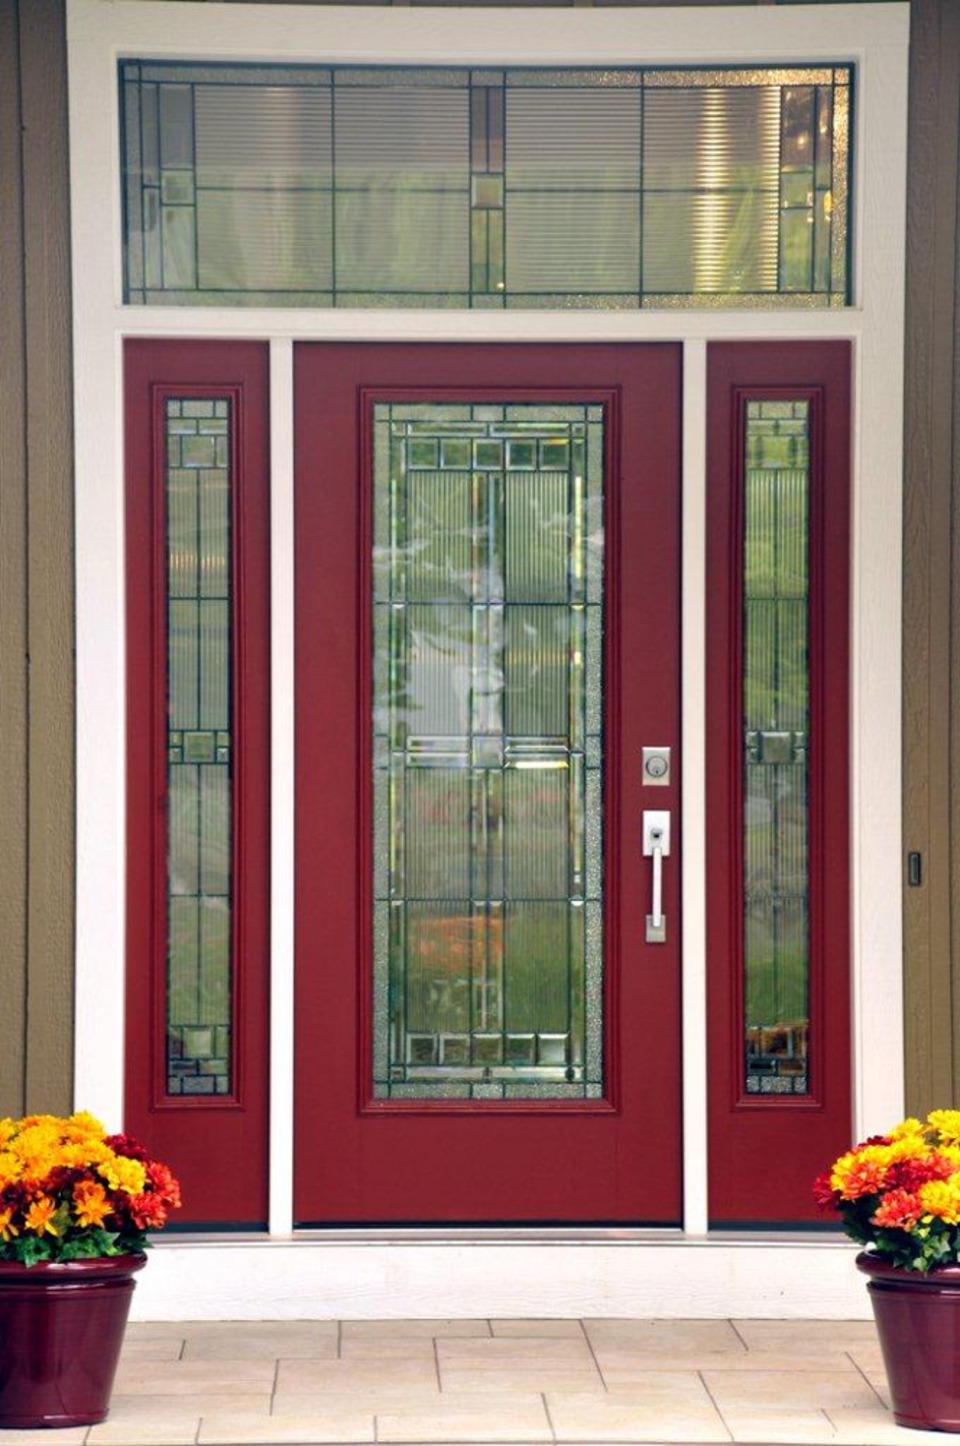 ... For Entry And Patio Doors, Providing Builders And Remodelers With  Advanced Engineering To Help Withstand Damaging Weather And Harsh  Conditions.